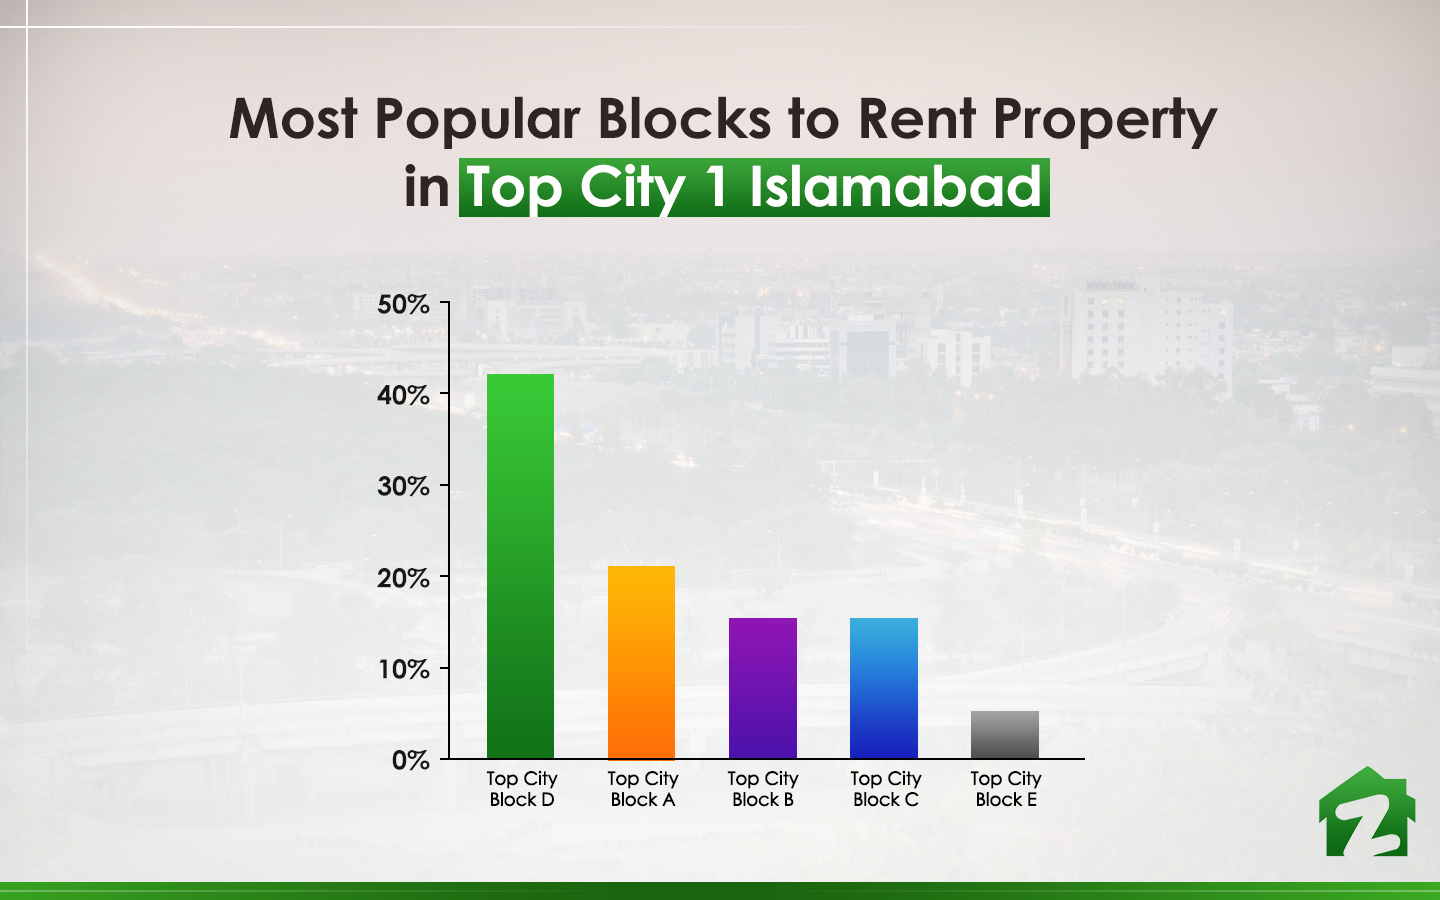 Popular Blocks to Rent Property in Top City 1 Islamabad